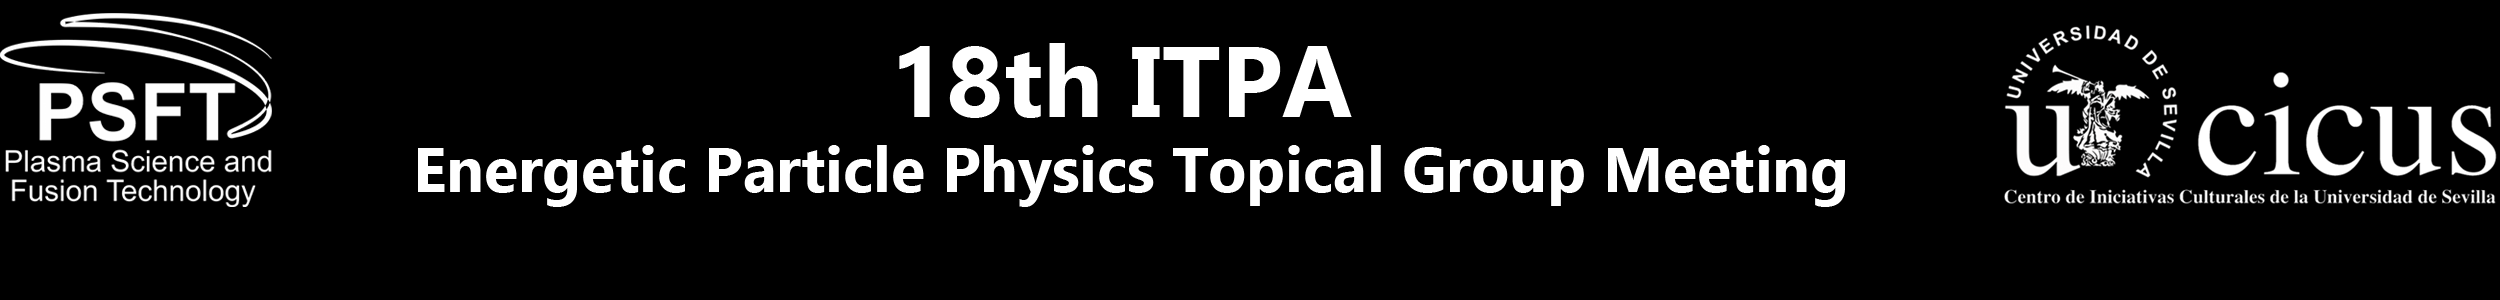 18th ITPA Energetic Particle Physics Topical Group Meeting